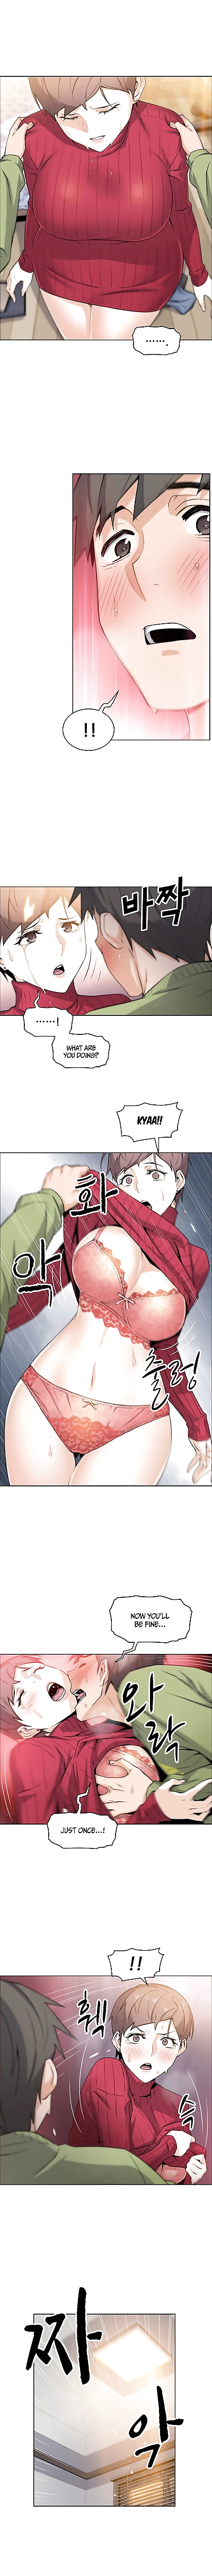 Housekeeper Neck Pillow- Paper Ch.5/? English Hentai Universe - part 3